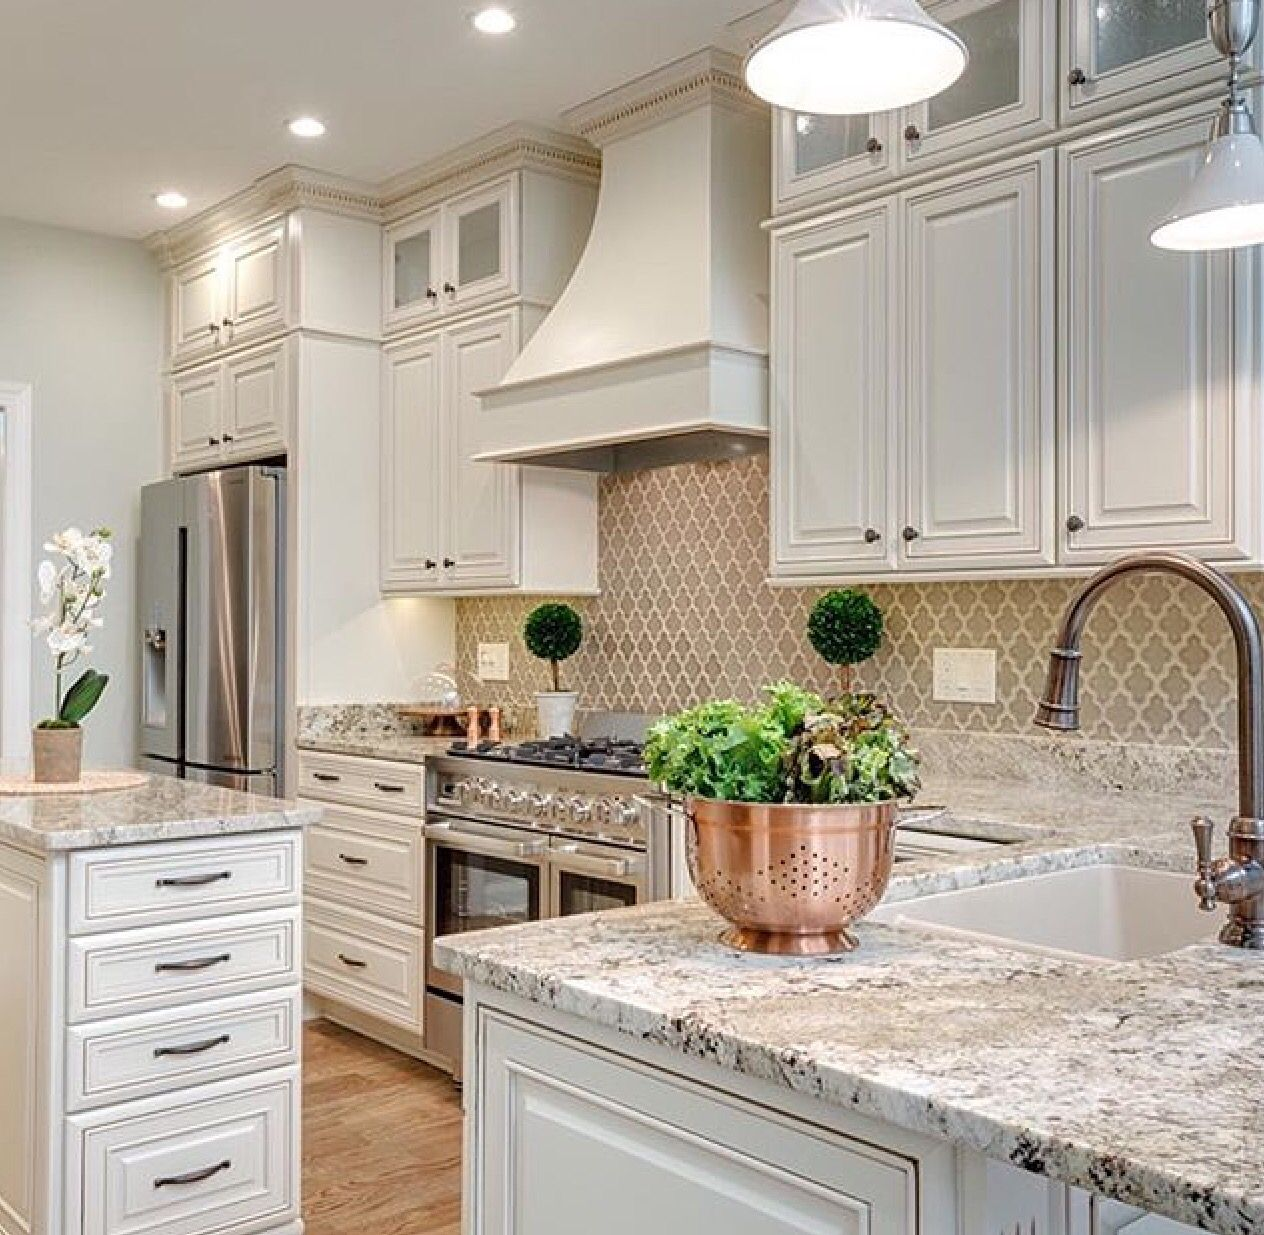 A Neutral Colored Kitchen Looks Clean And Fresh. The